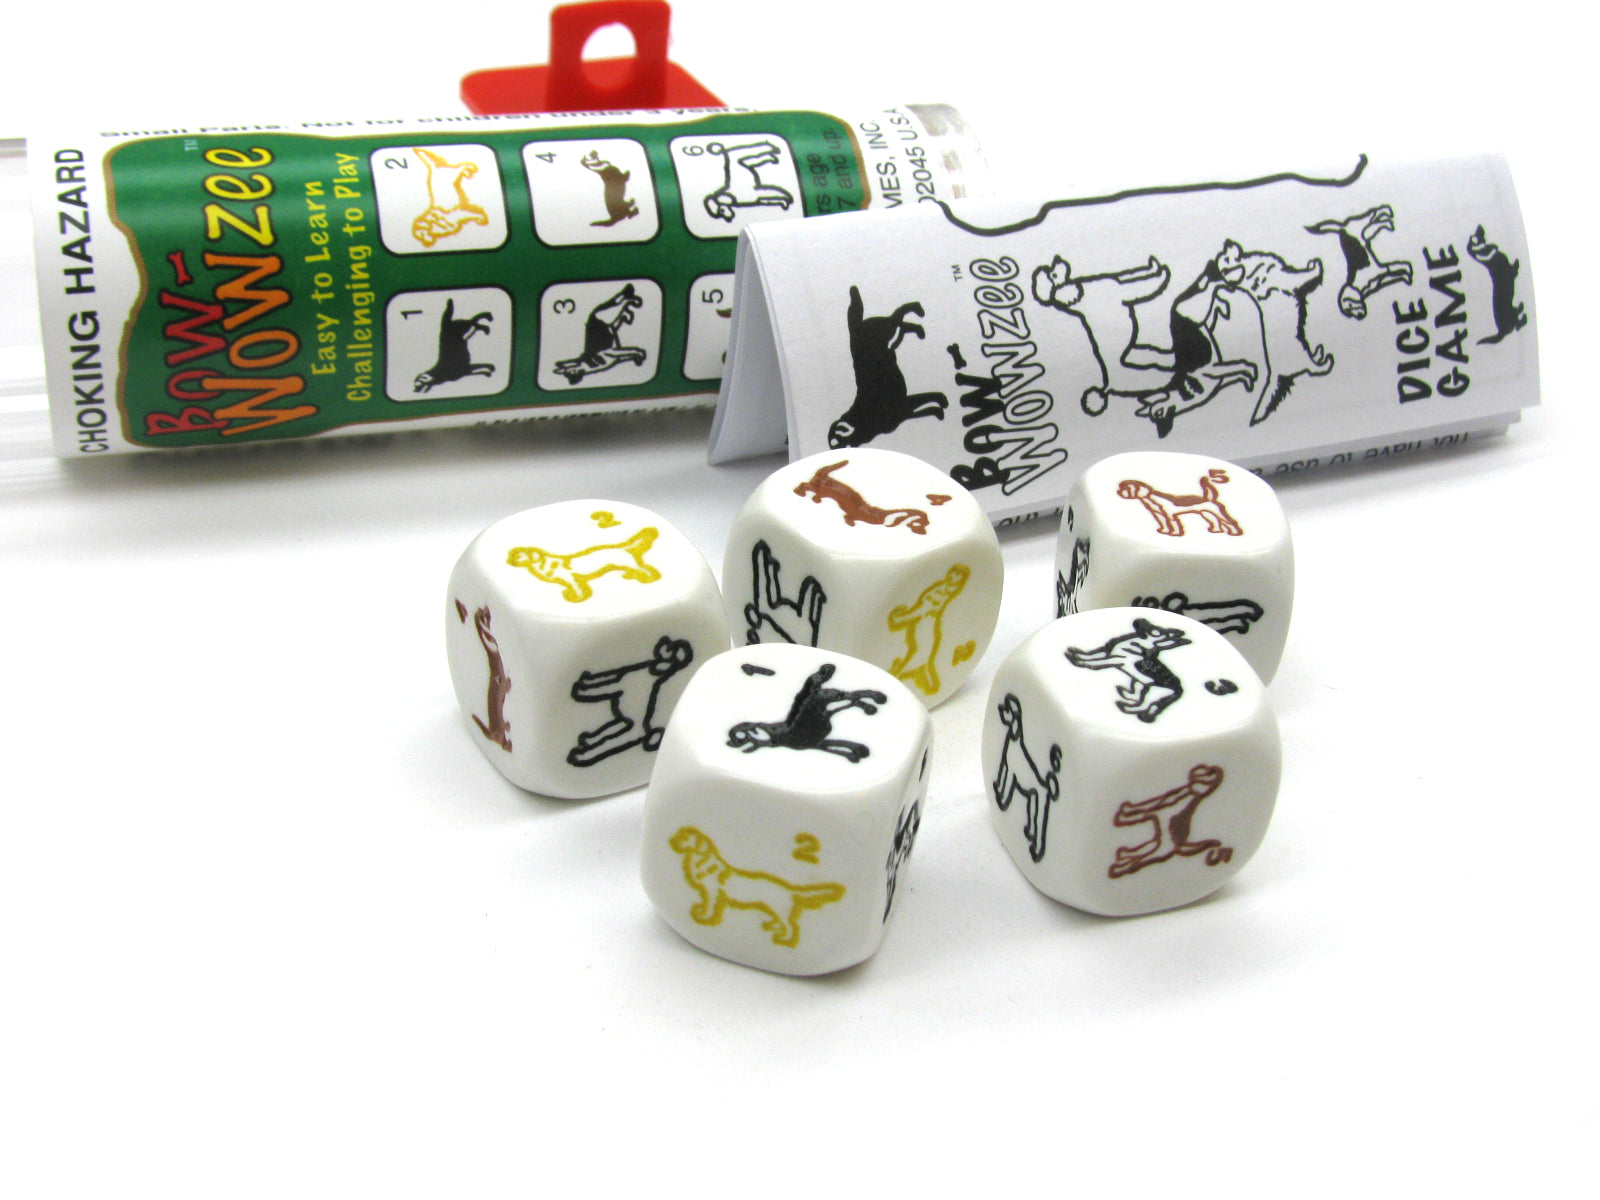 Bow-Wowzee Dog Dice Game 5 Dice Set with Travel Tube and Instructions